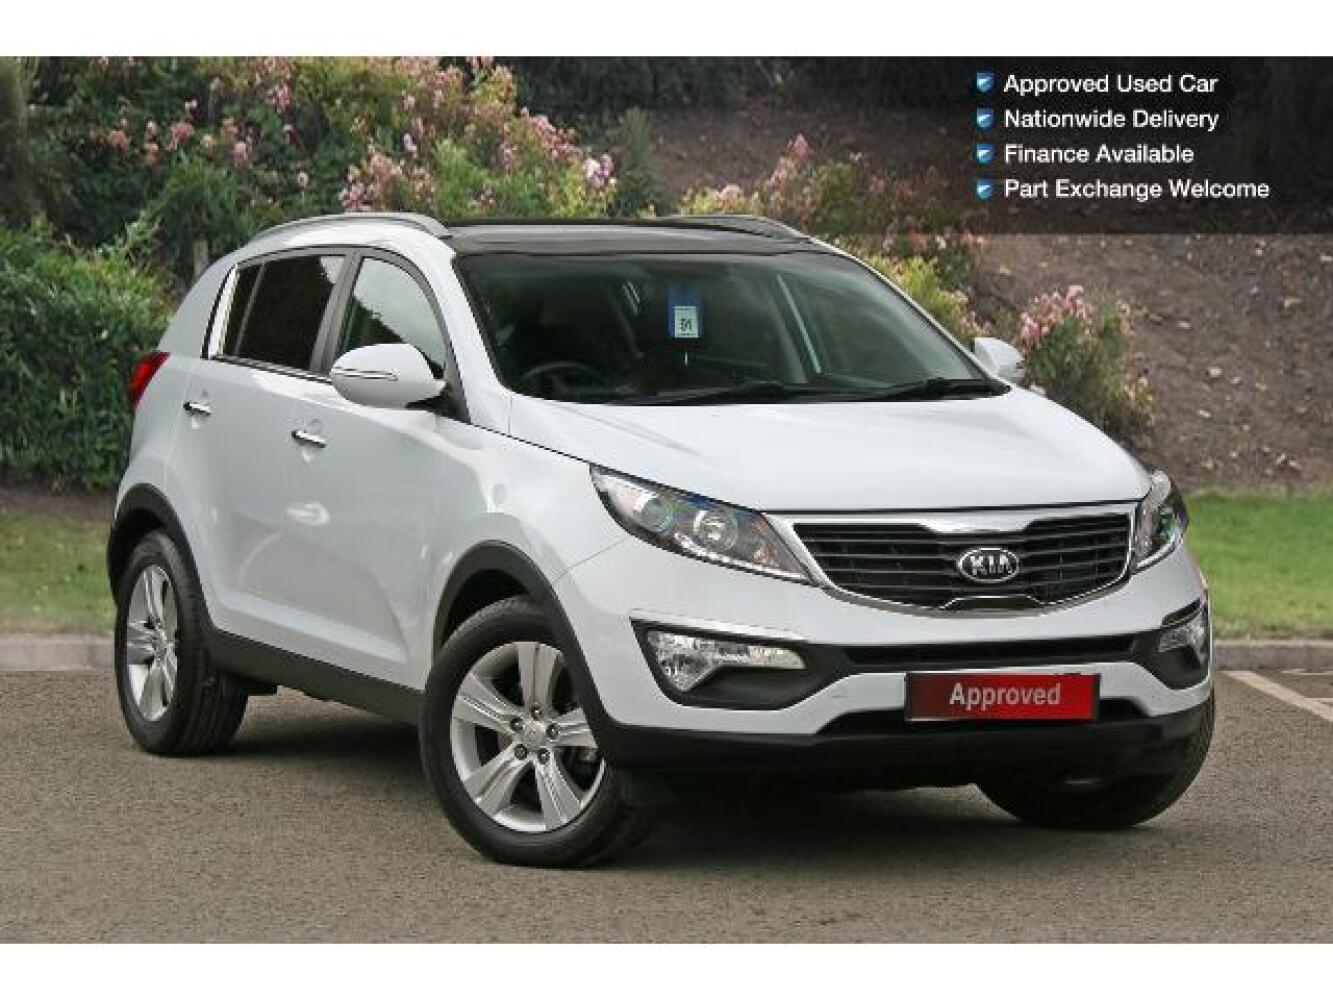 used kia sportage 1 7 crdi isg 2 5dr diesel estate for sale newcastle infiniti. Black Bedroom Furniture Sets. Home Design Ideas